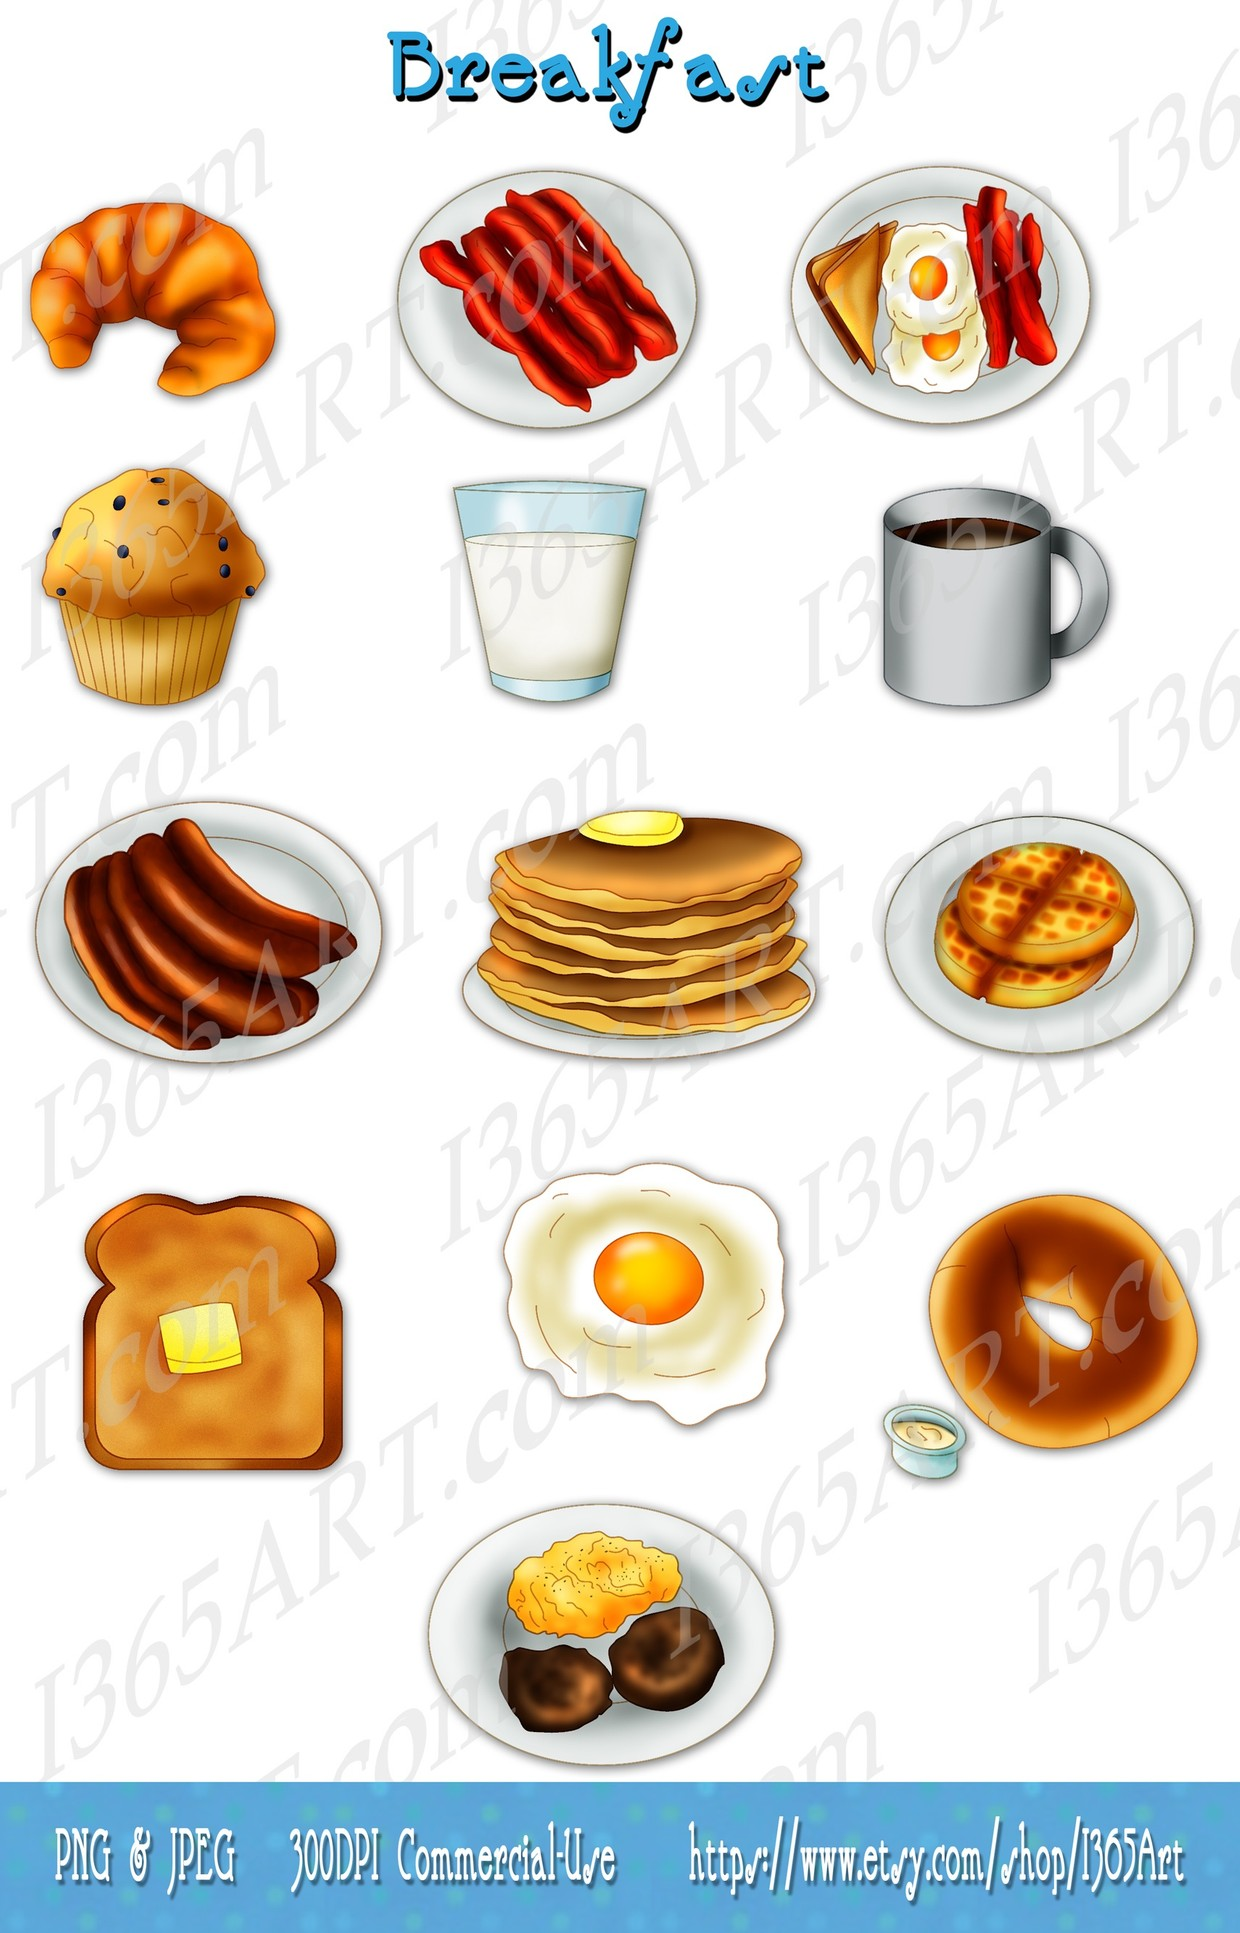 Breakfast Clipart clip art, Graphics, Invitations, bacon, eggs, pancakes,  sausage, waffles.